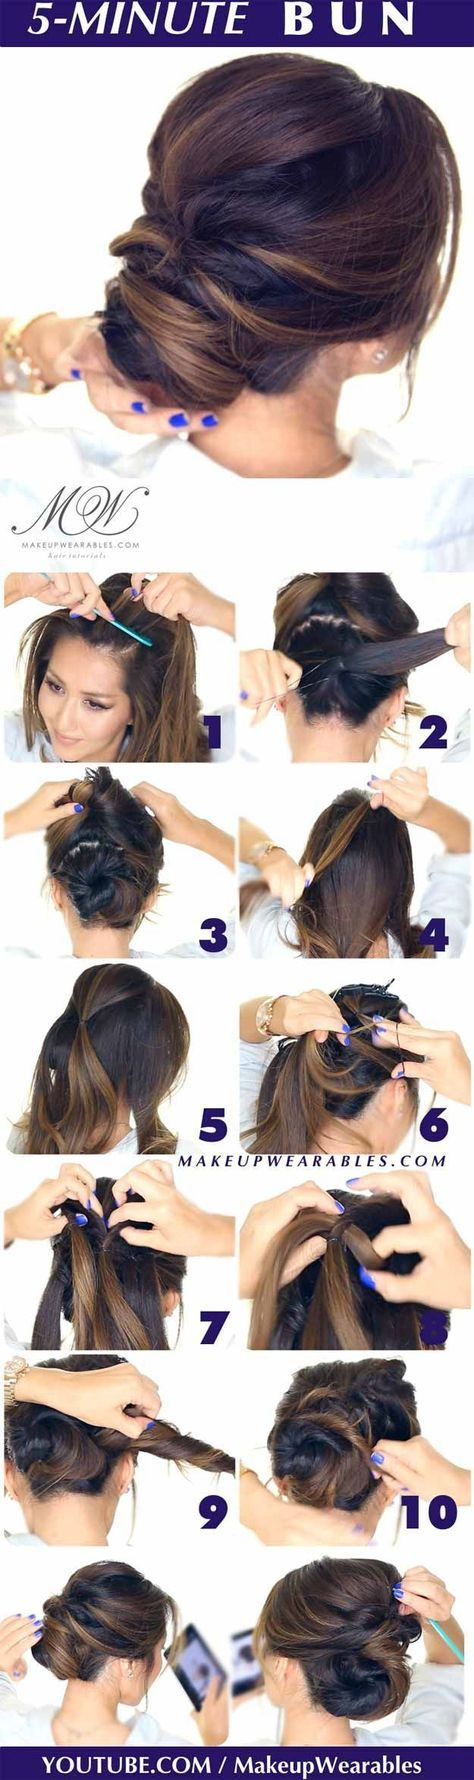 33 Best Hairstyles For Your 30s The Goddess Hair Styles Long Hair Styles Short Hair Styles